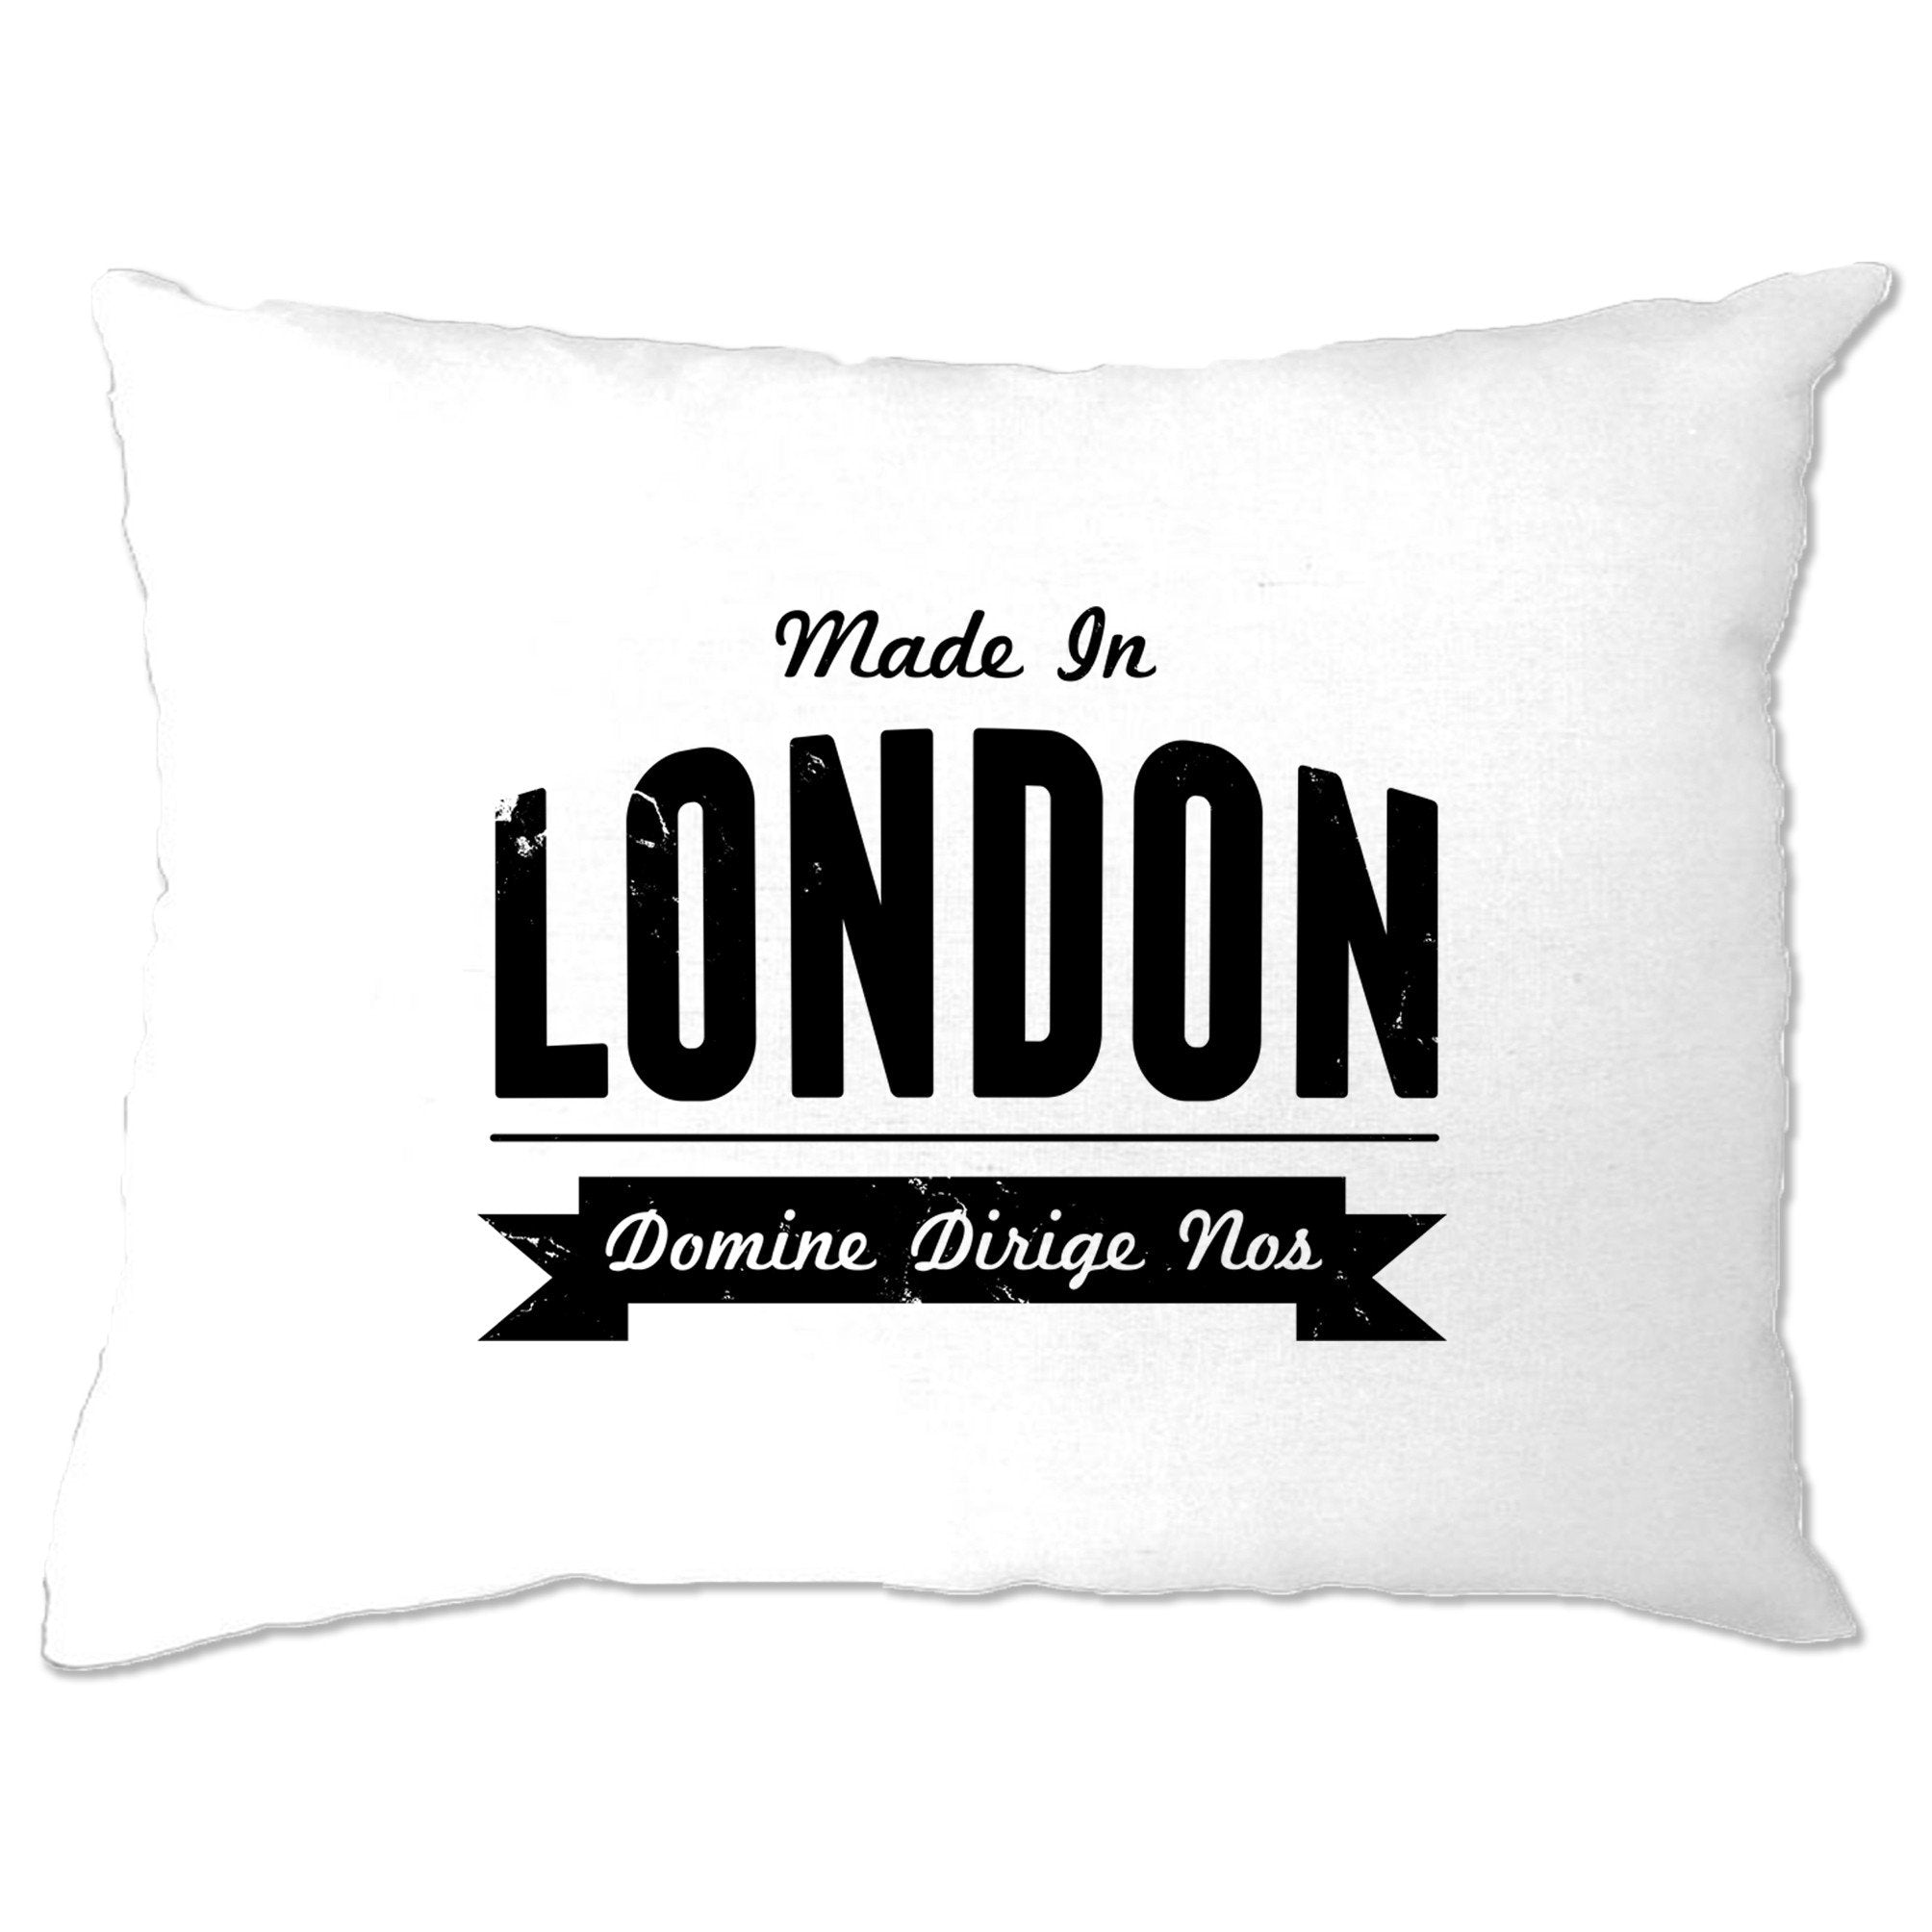 Hometown Pride Pillow Case Made in London Banner